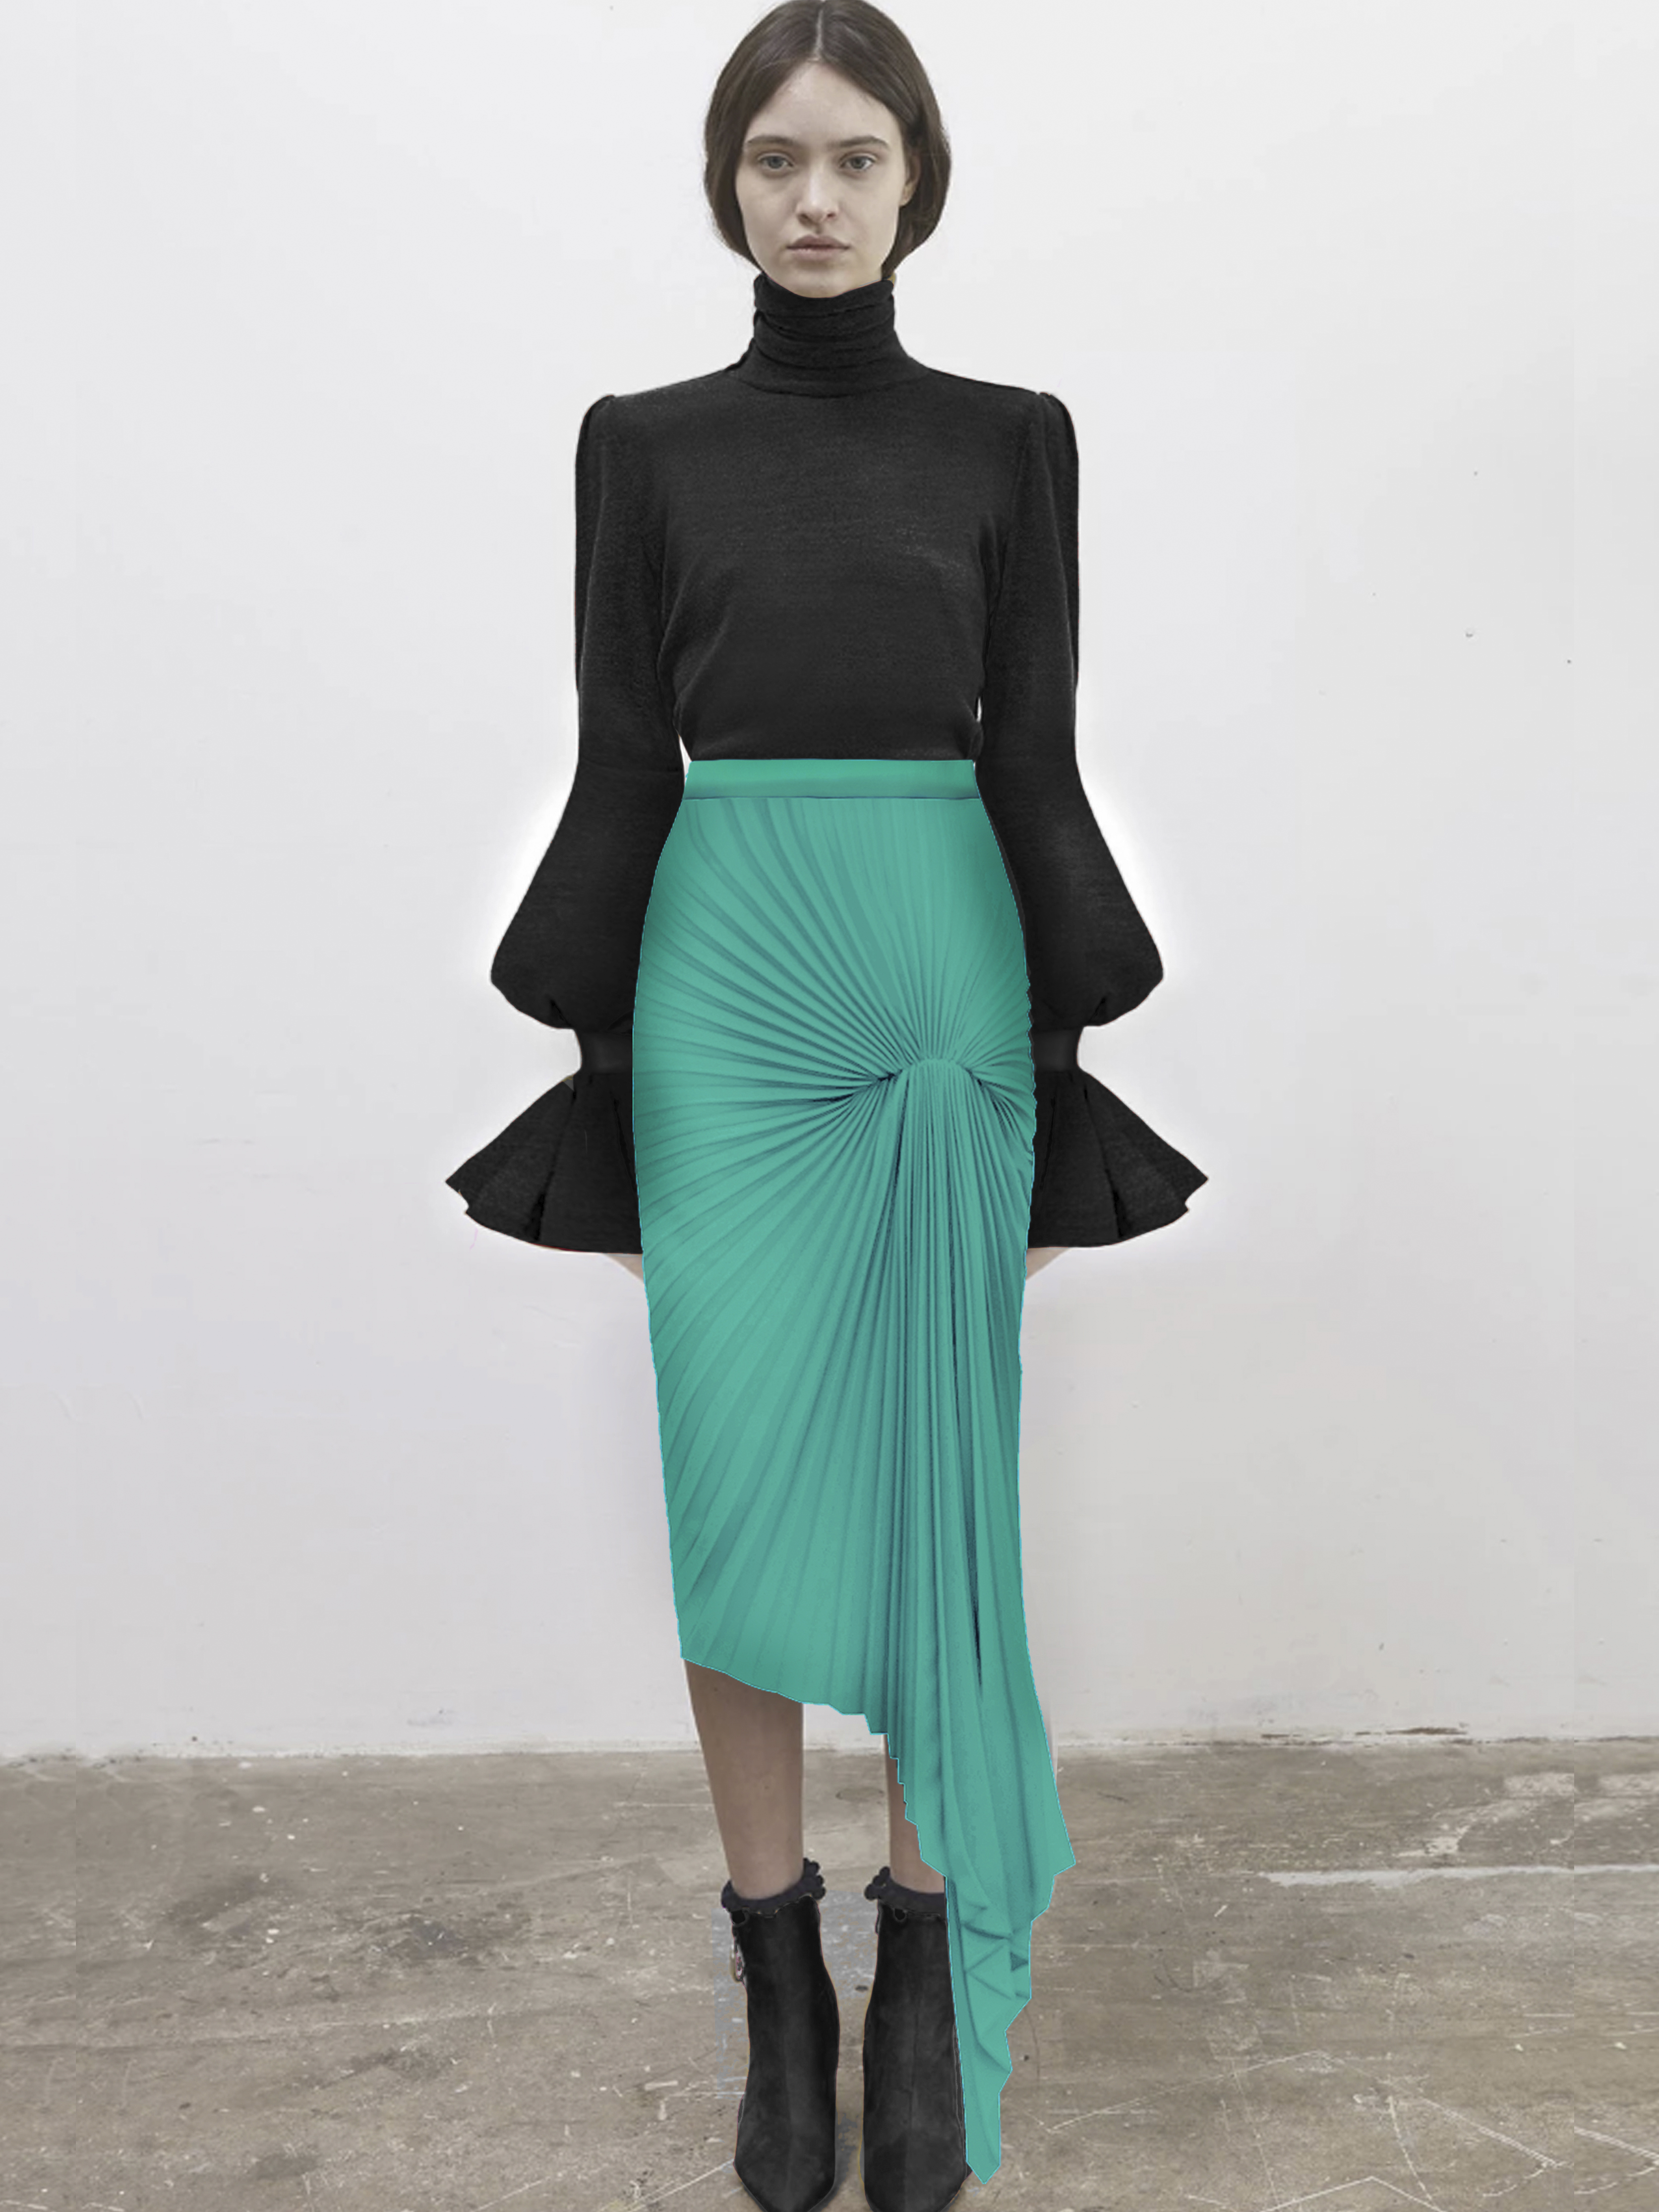 Dazed Skirt by Georgia Hardinge on curated-crowd.com